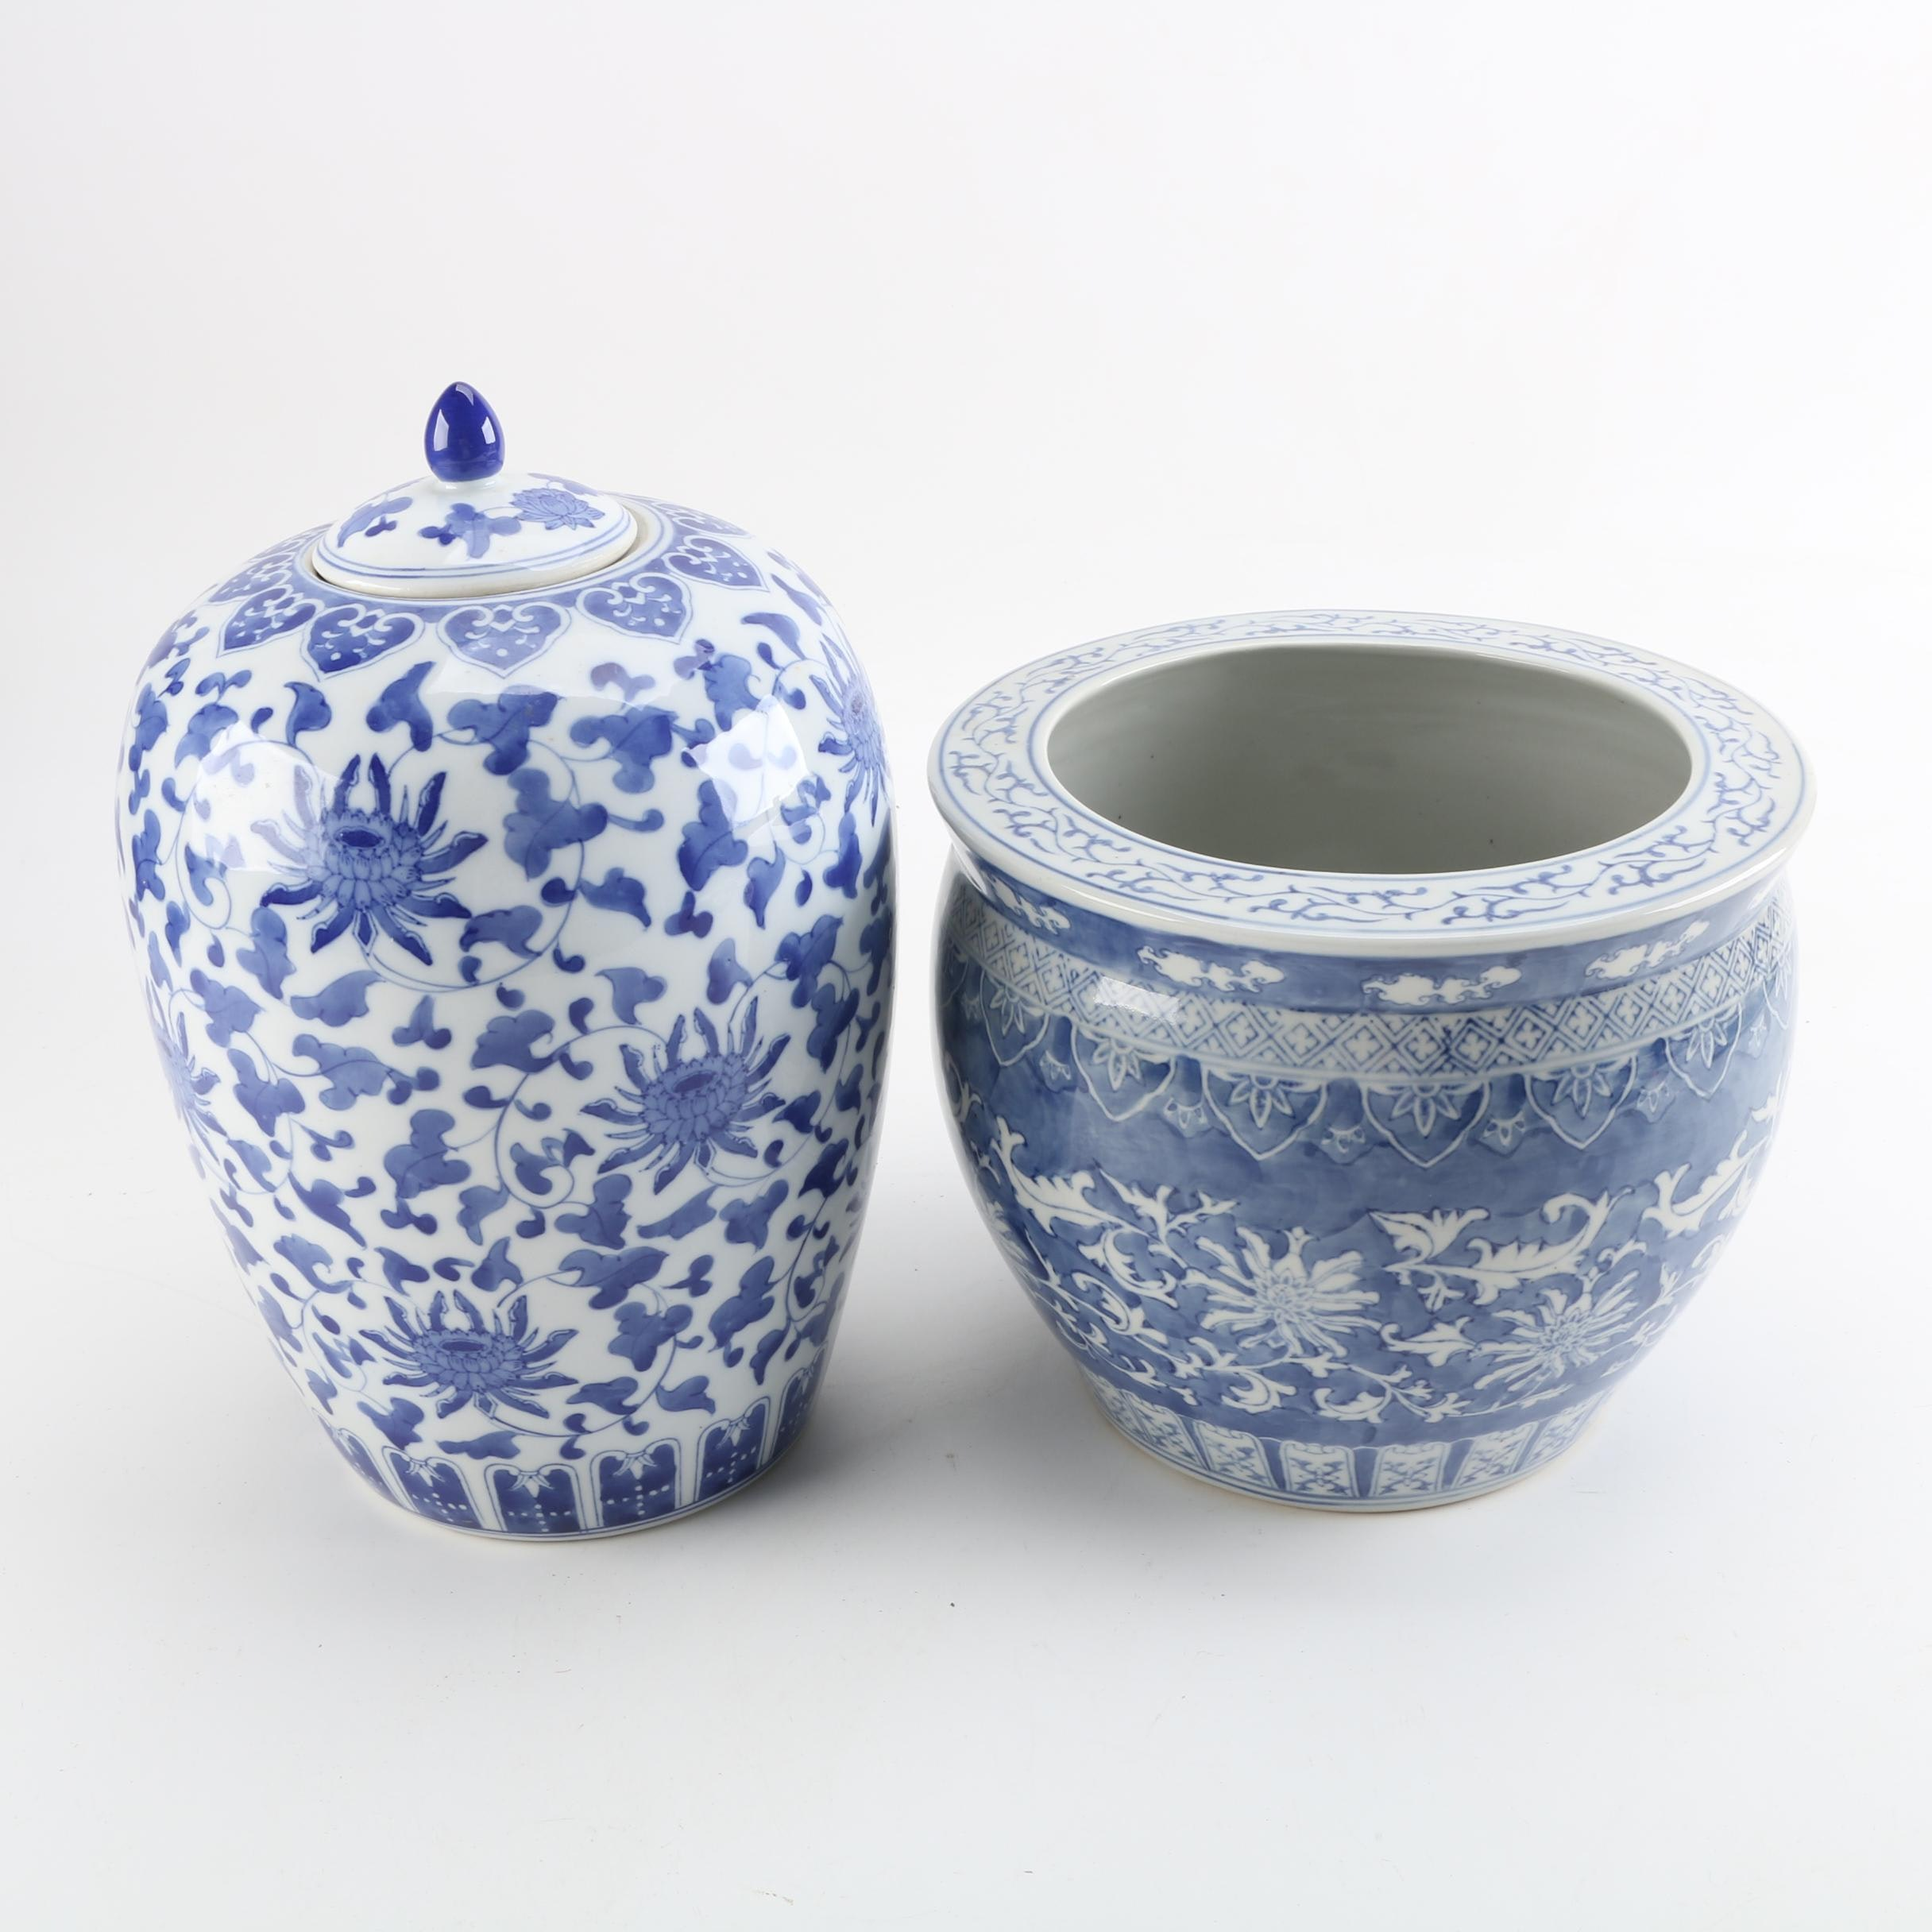 Chinese Blue and White Ceramic Lidded Urn and Planter